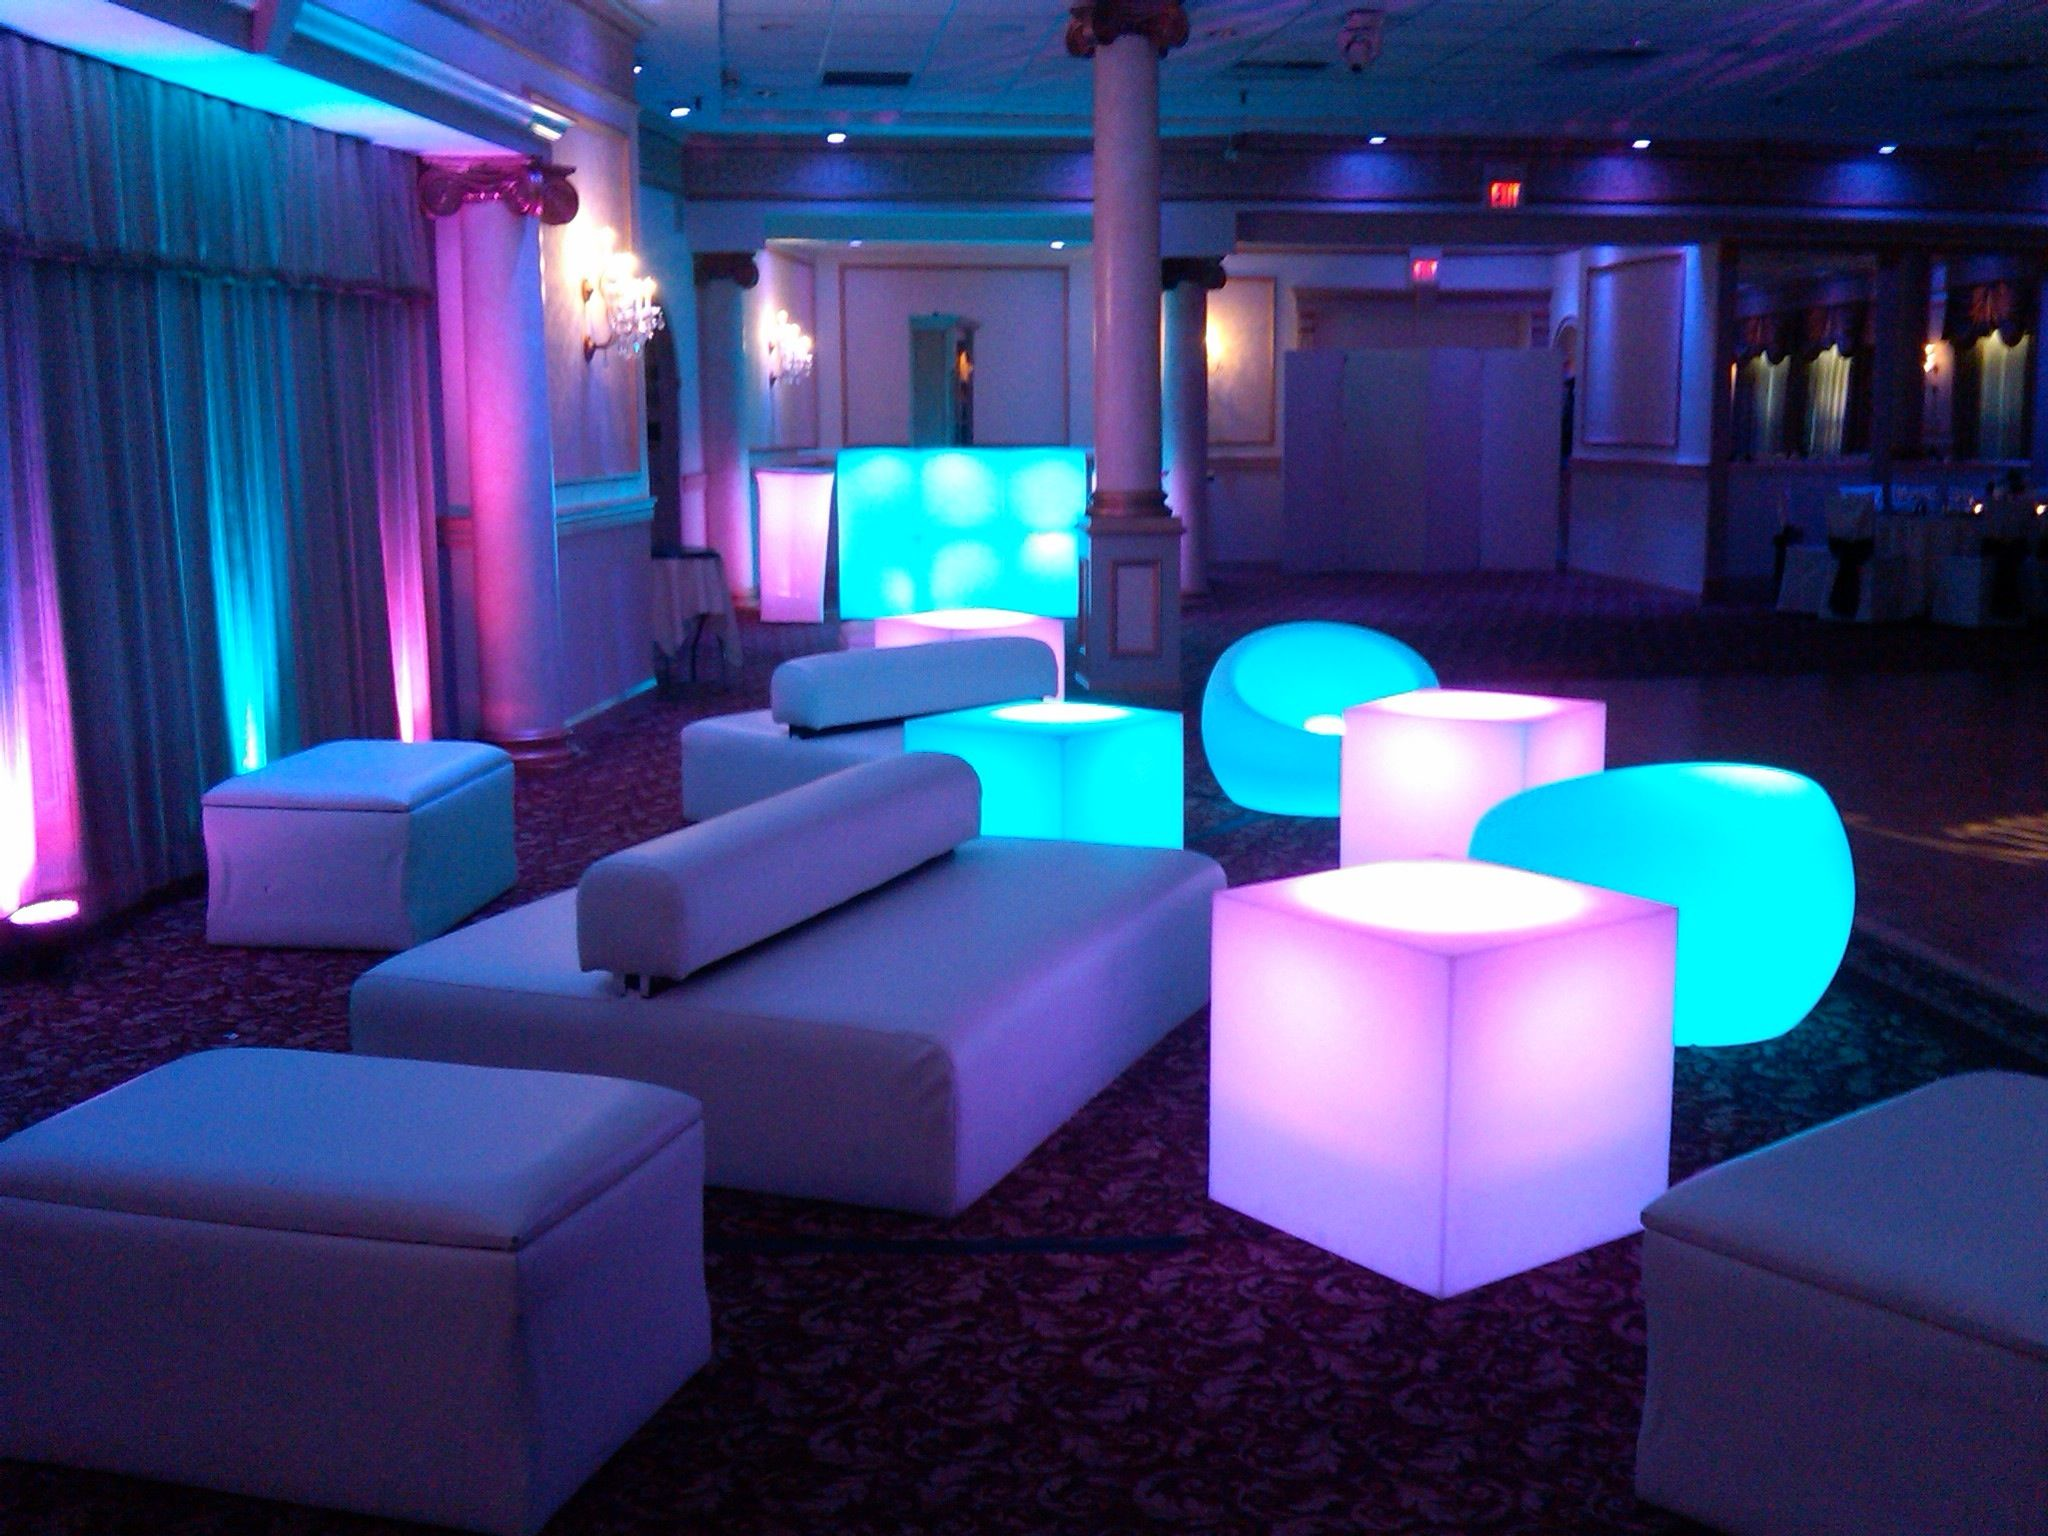 Lounge seating for a bat mitzvah quinces sweet sixteen bar mitzvah bat mitzvah emme 39 s bat - Design lounges ...